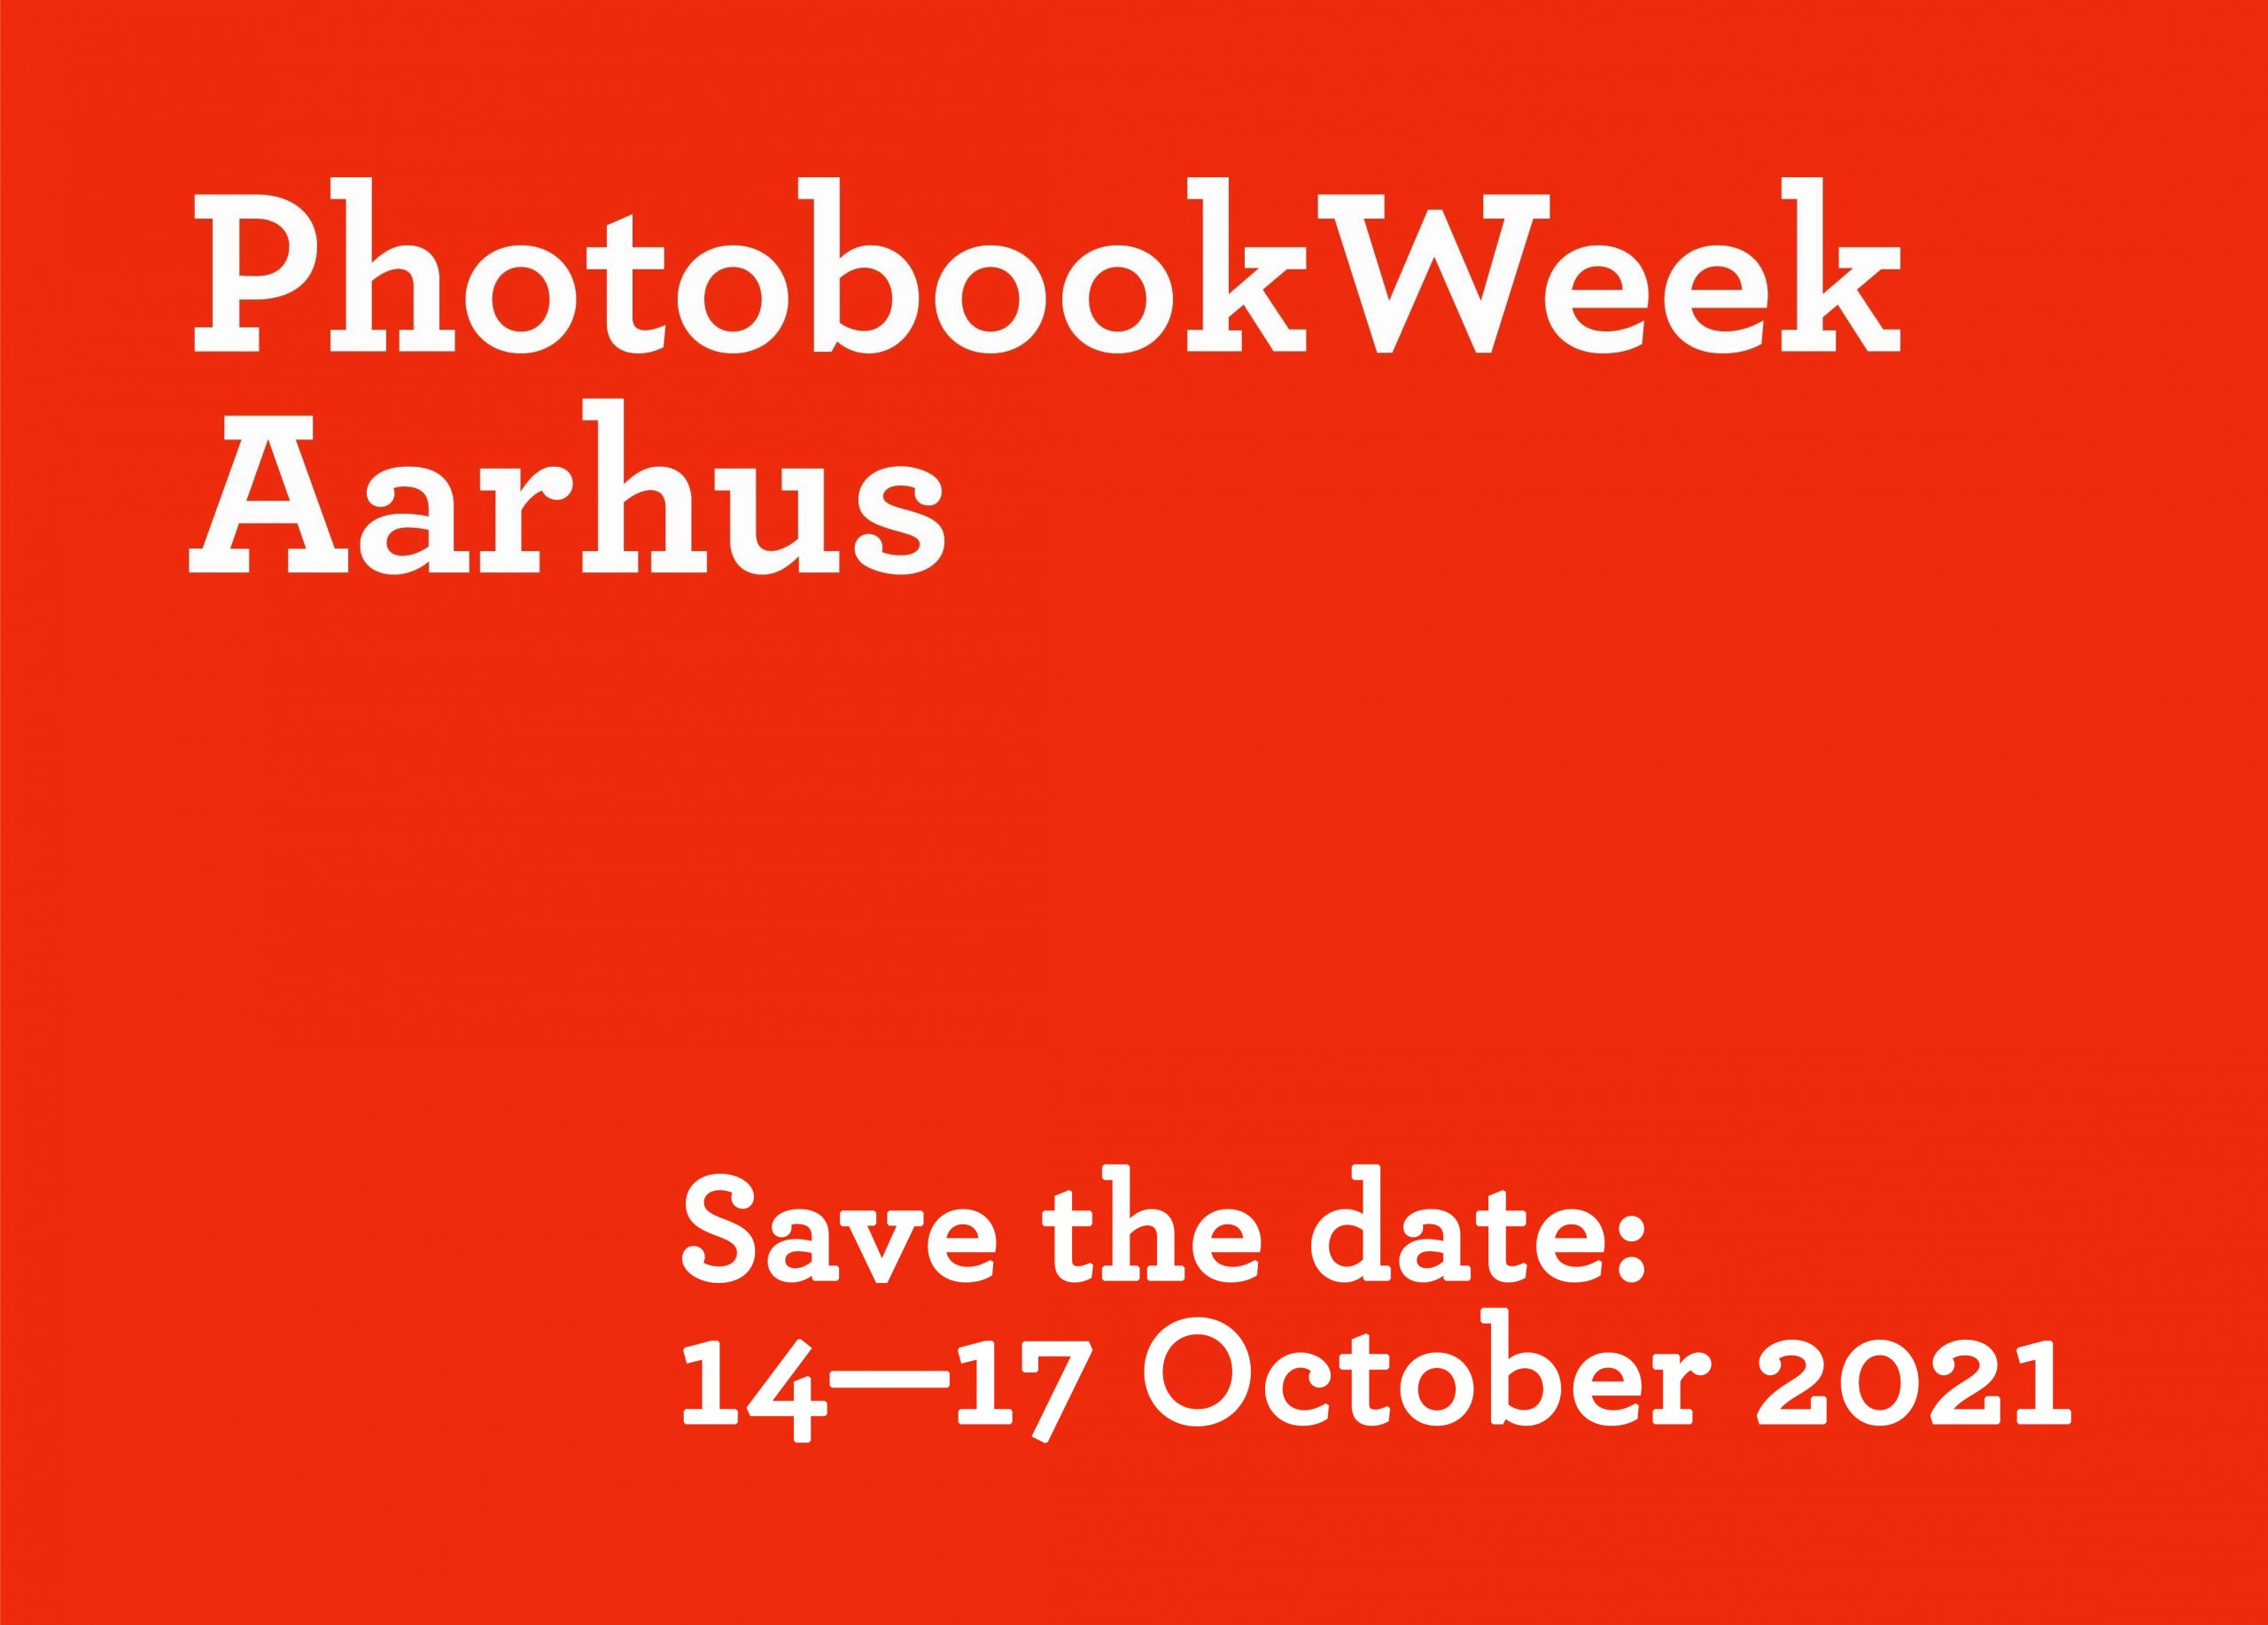 Photobook Week Aarhus will take place from 14 to 17 October, 2021